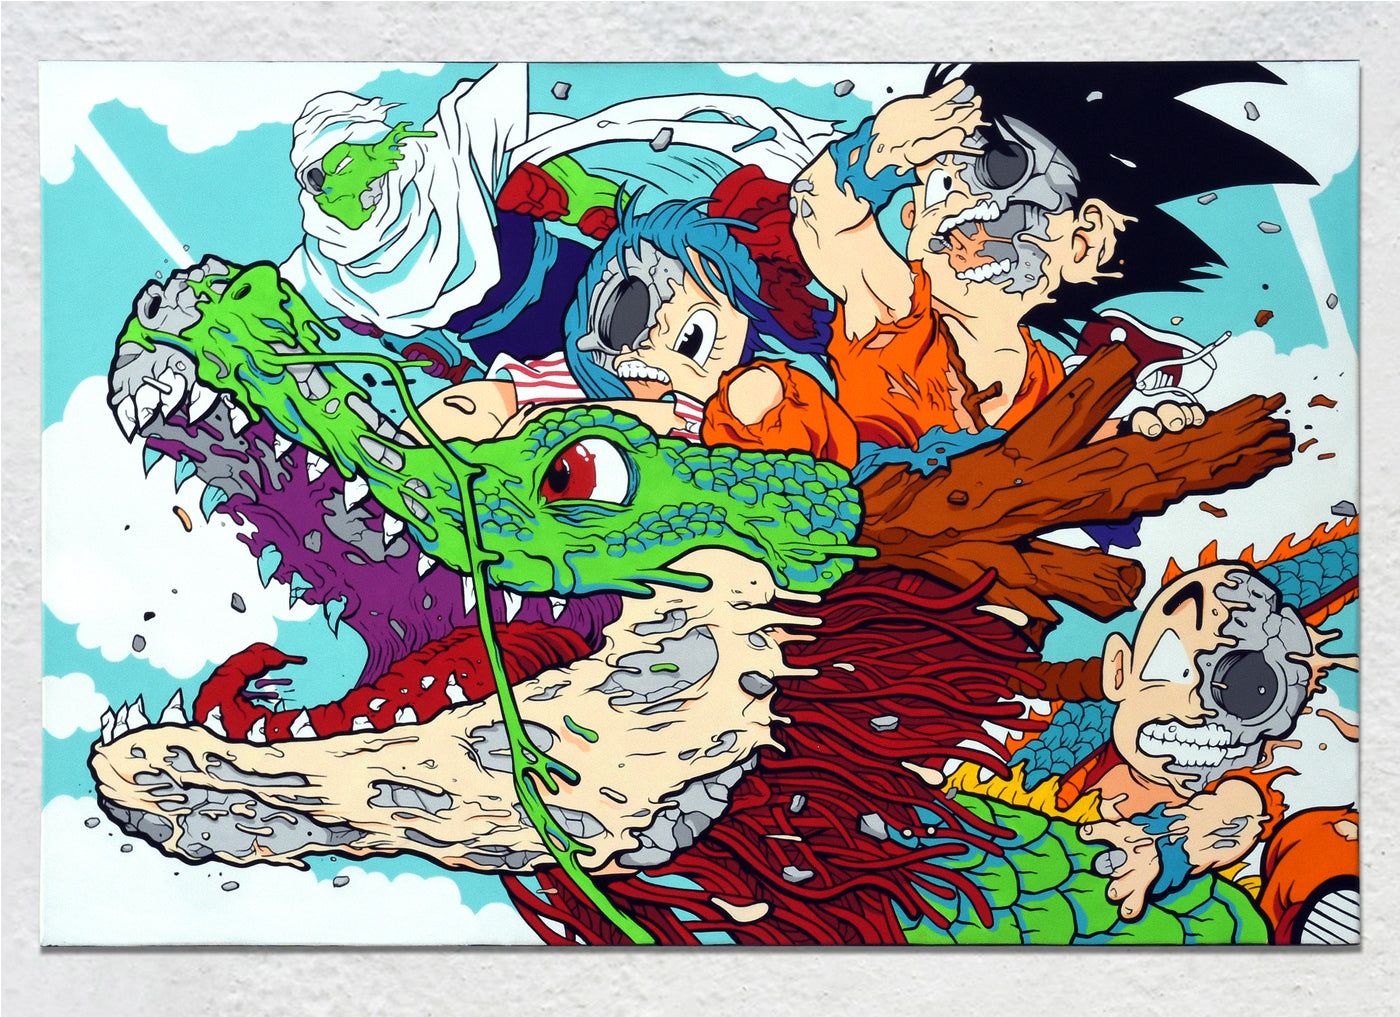 Dragonball deconstructed by Matt Gondek